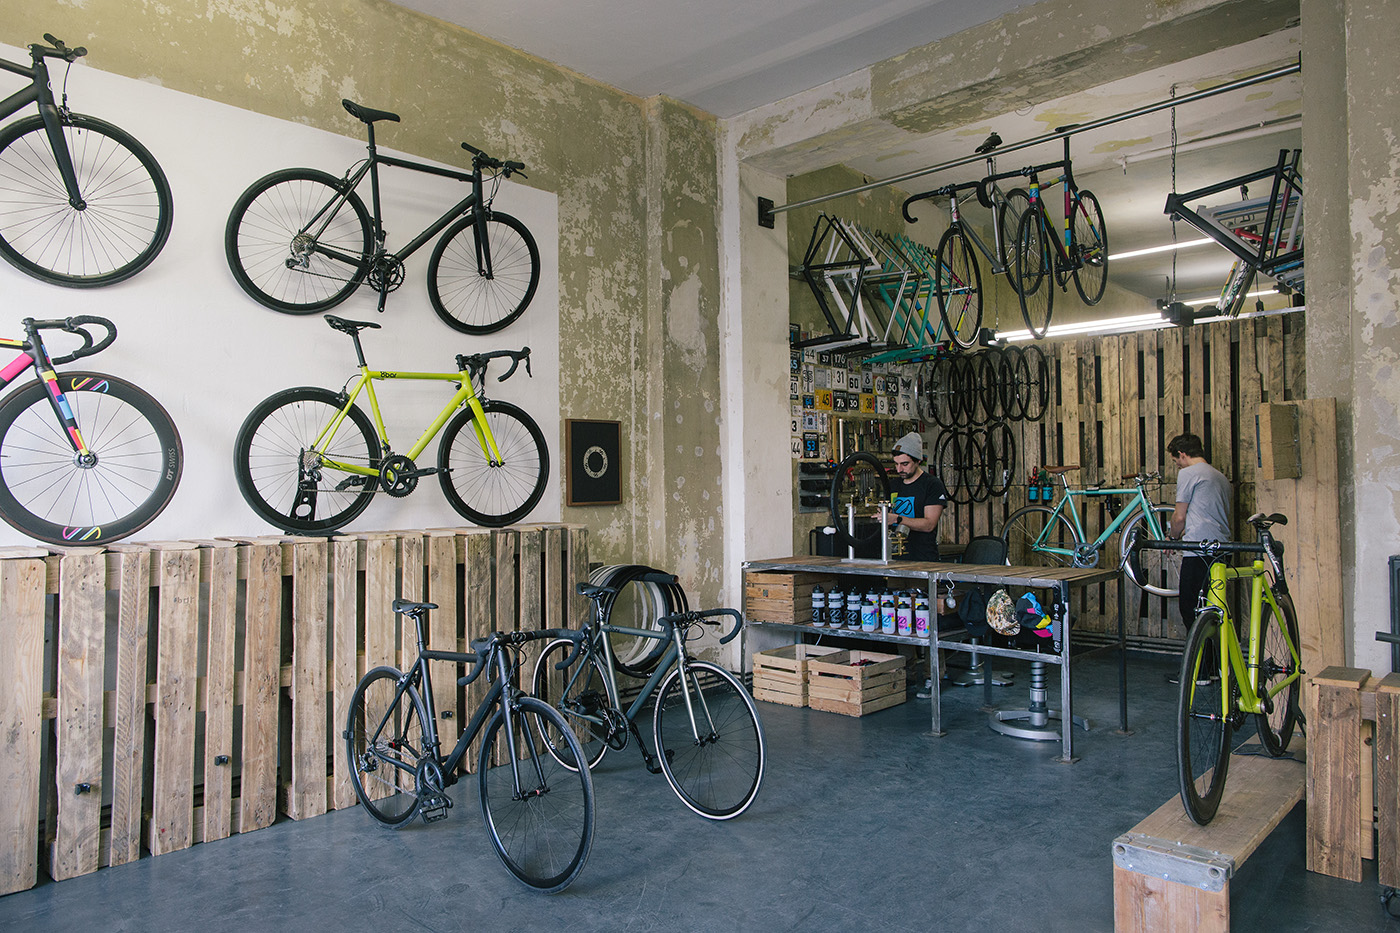 8bar showroom berlin 0940 s 1 - Check out the new 8bar Showroom Berlin